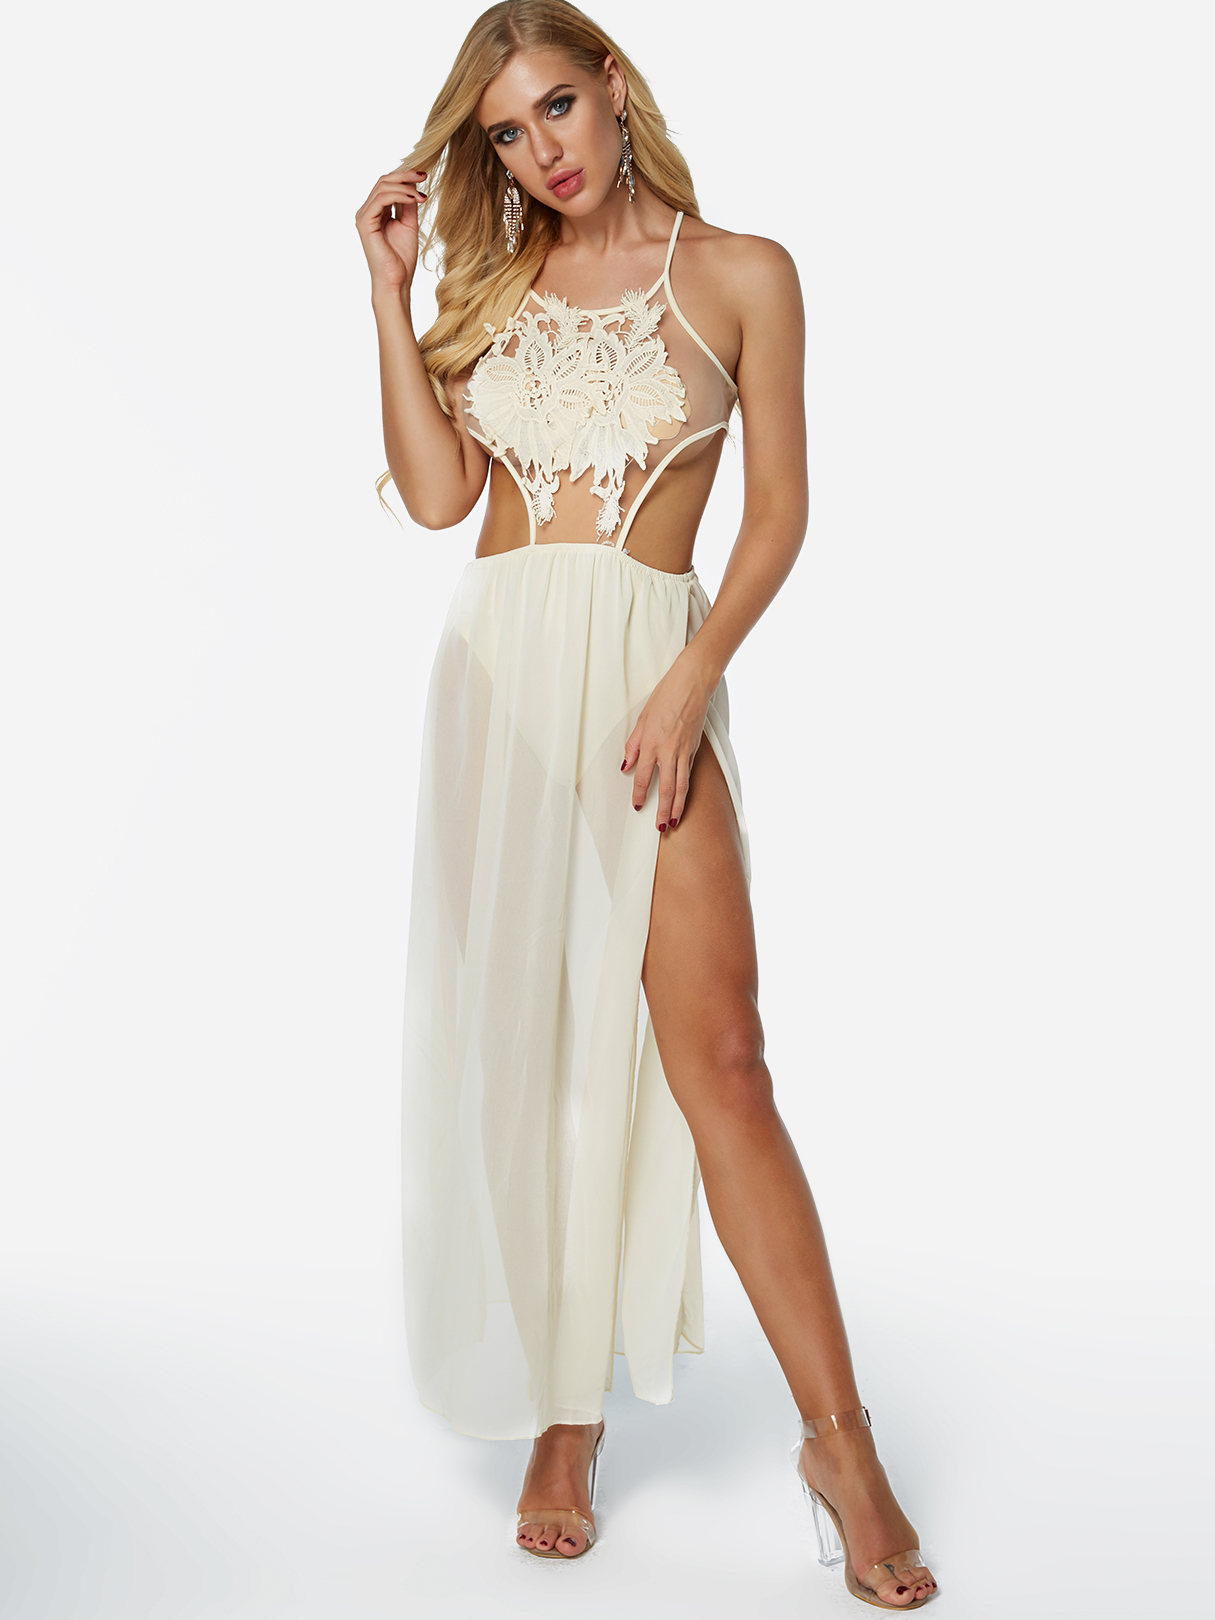 Bilde av Apricot Lace See through Design Halter Backless Design Splited Hem Dress